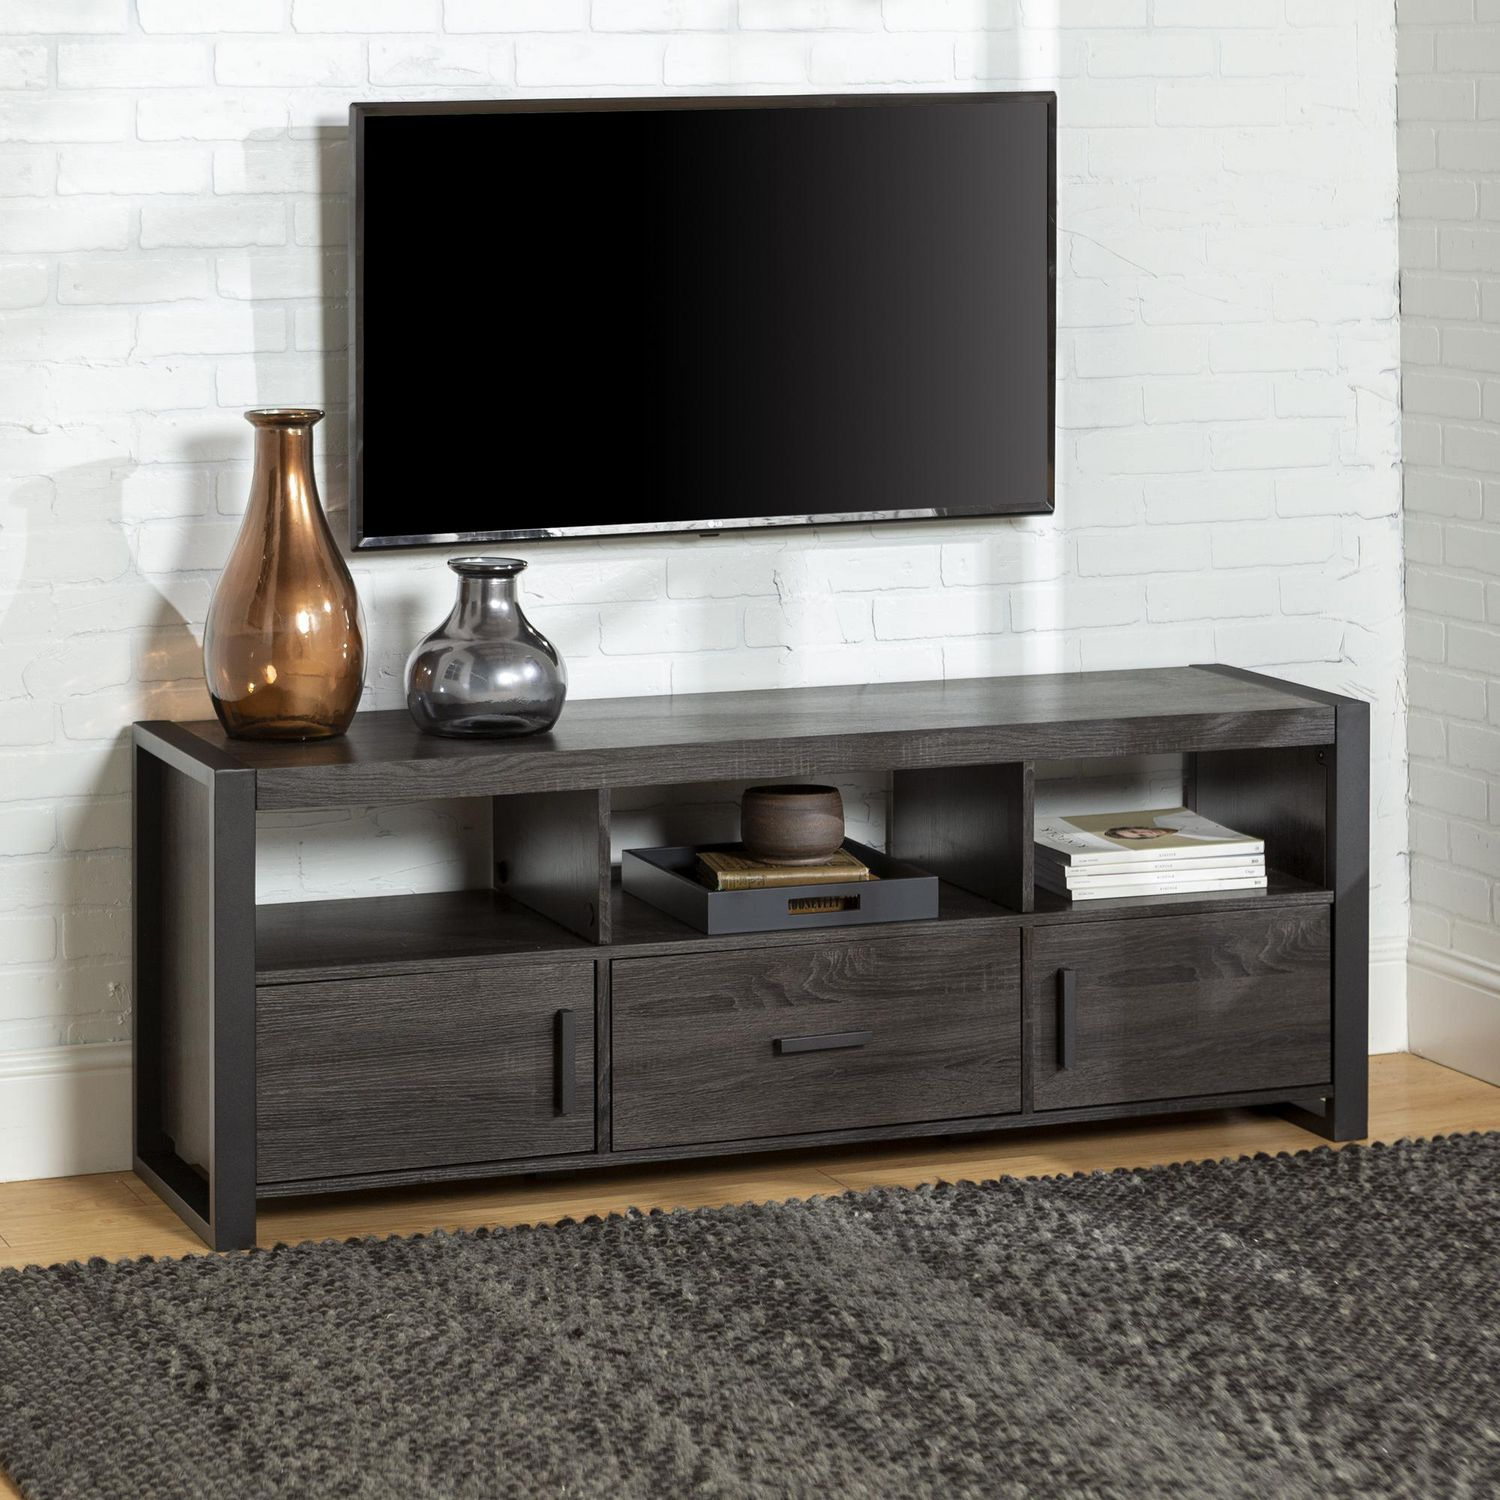 Manor Park Industrial Tv Stand With Storage For Tv S Up To 66